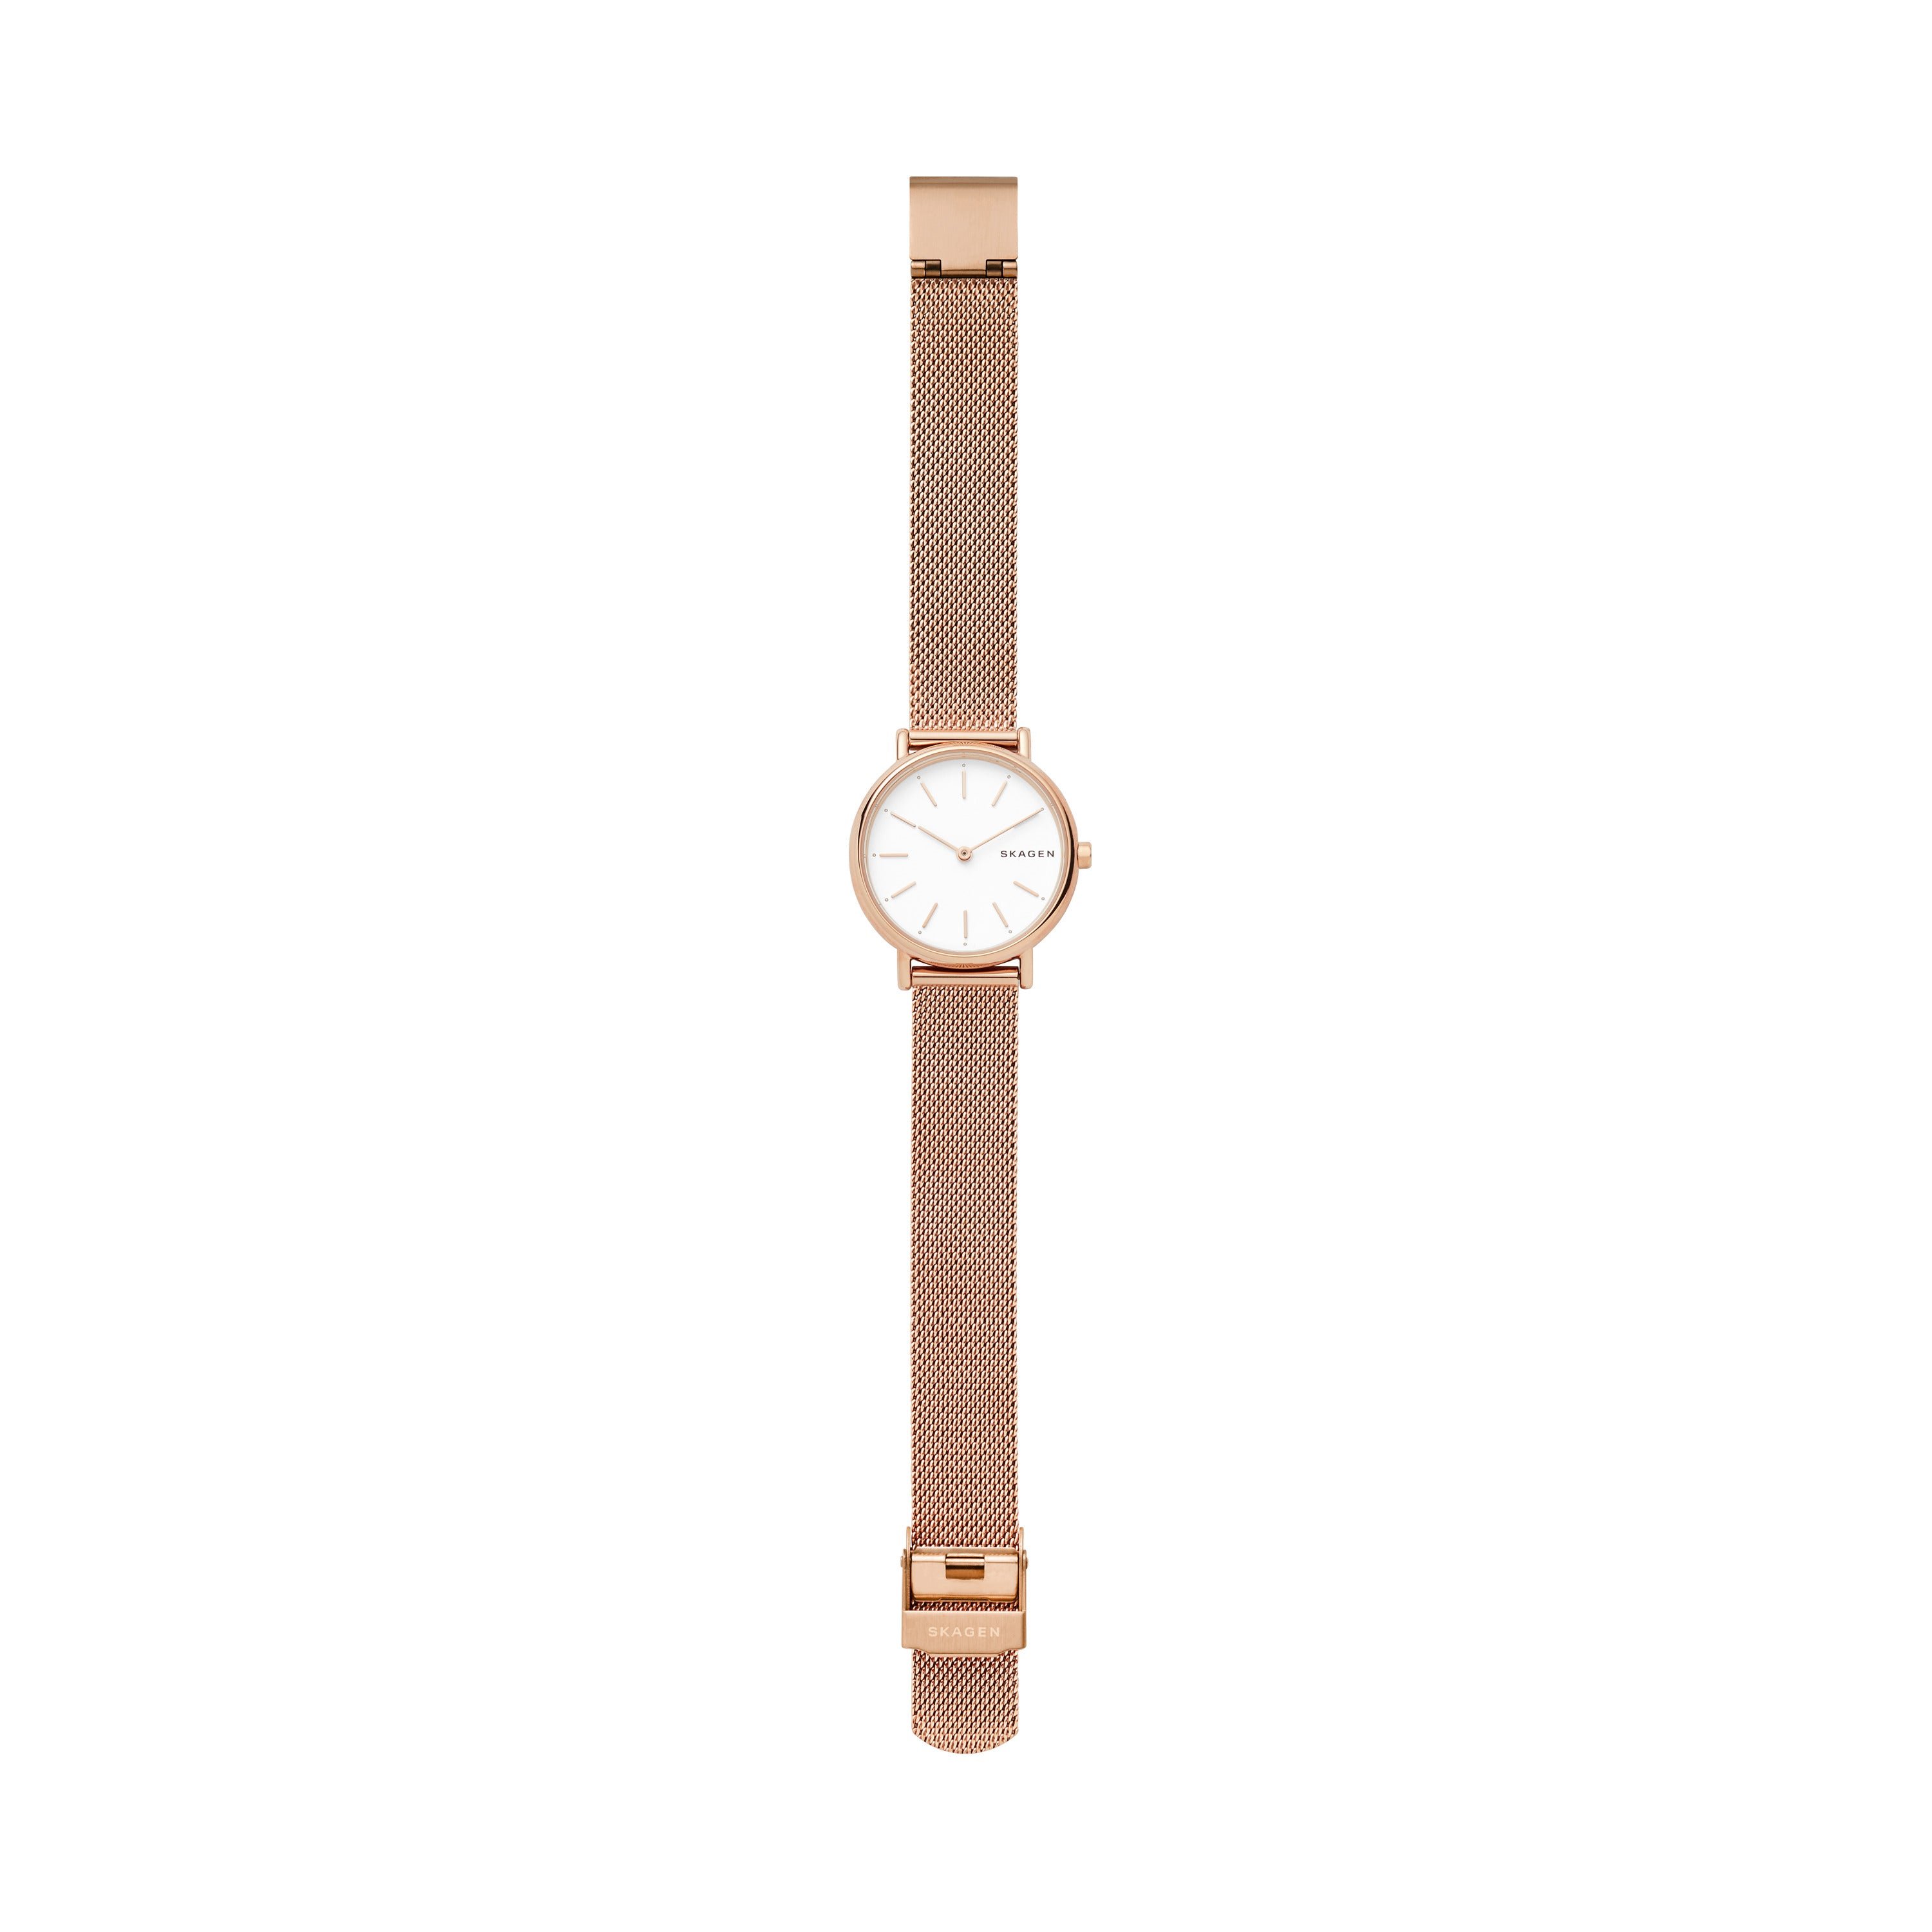 SIGNATUR SLIM Rose Gold Tone Steel Mesh Watch & Gray Leather Strap